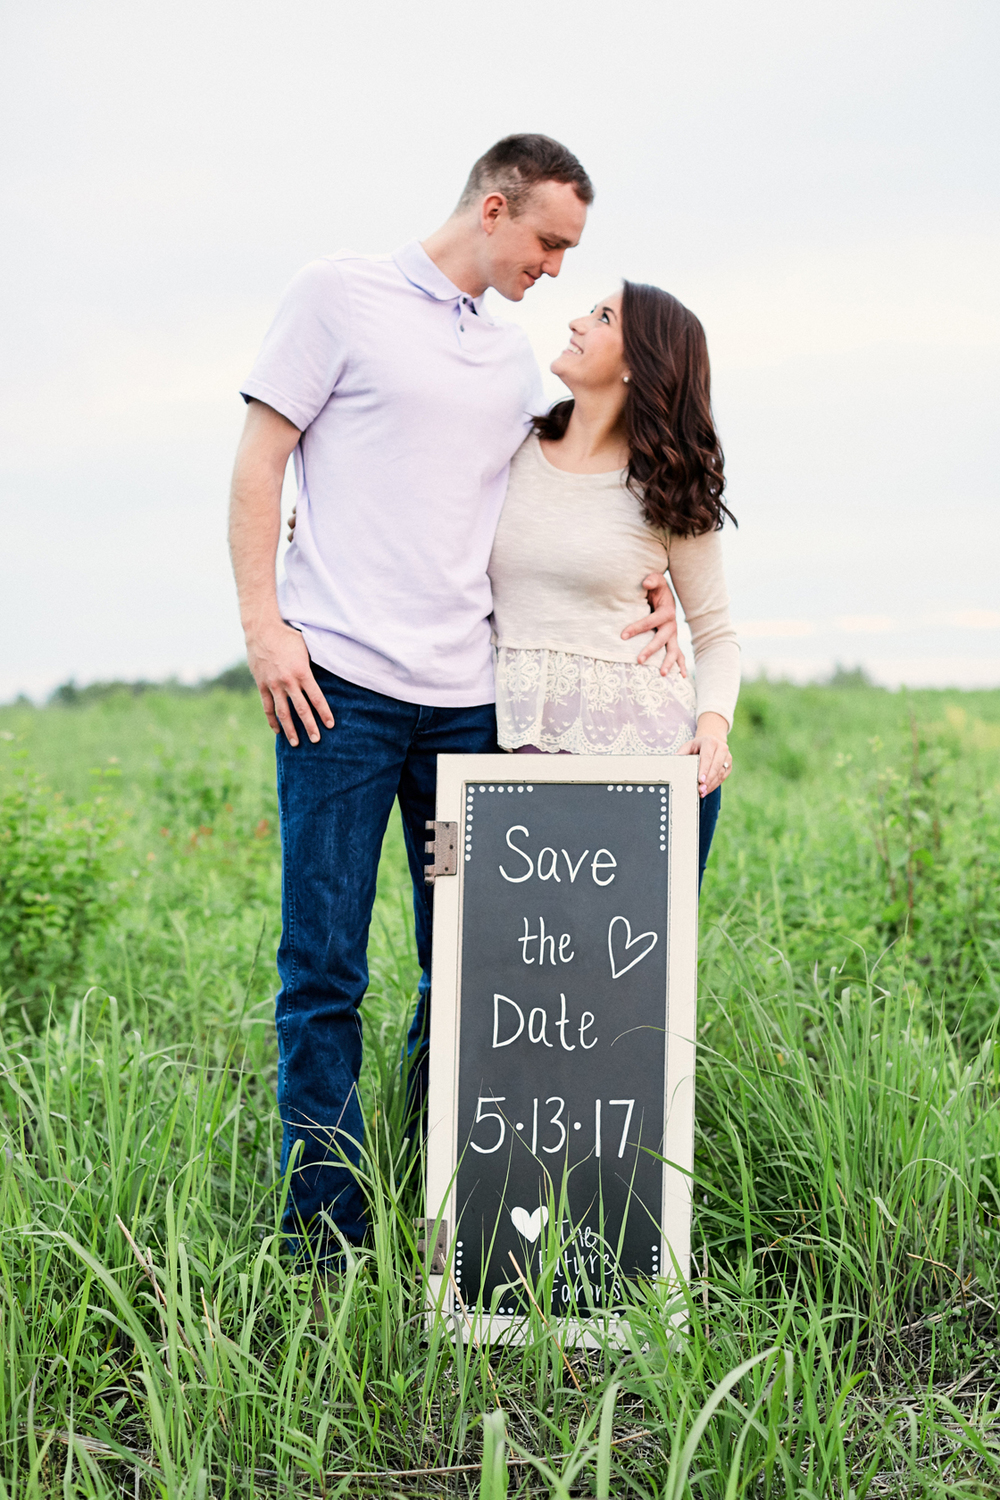 Busch Wildlife and Defiance Engagement Session in St Charles County by Oldani Photography St. Louis Wedding Photographers 1